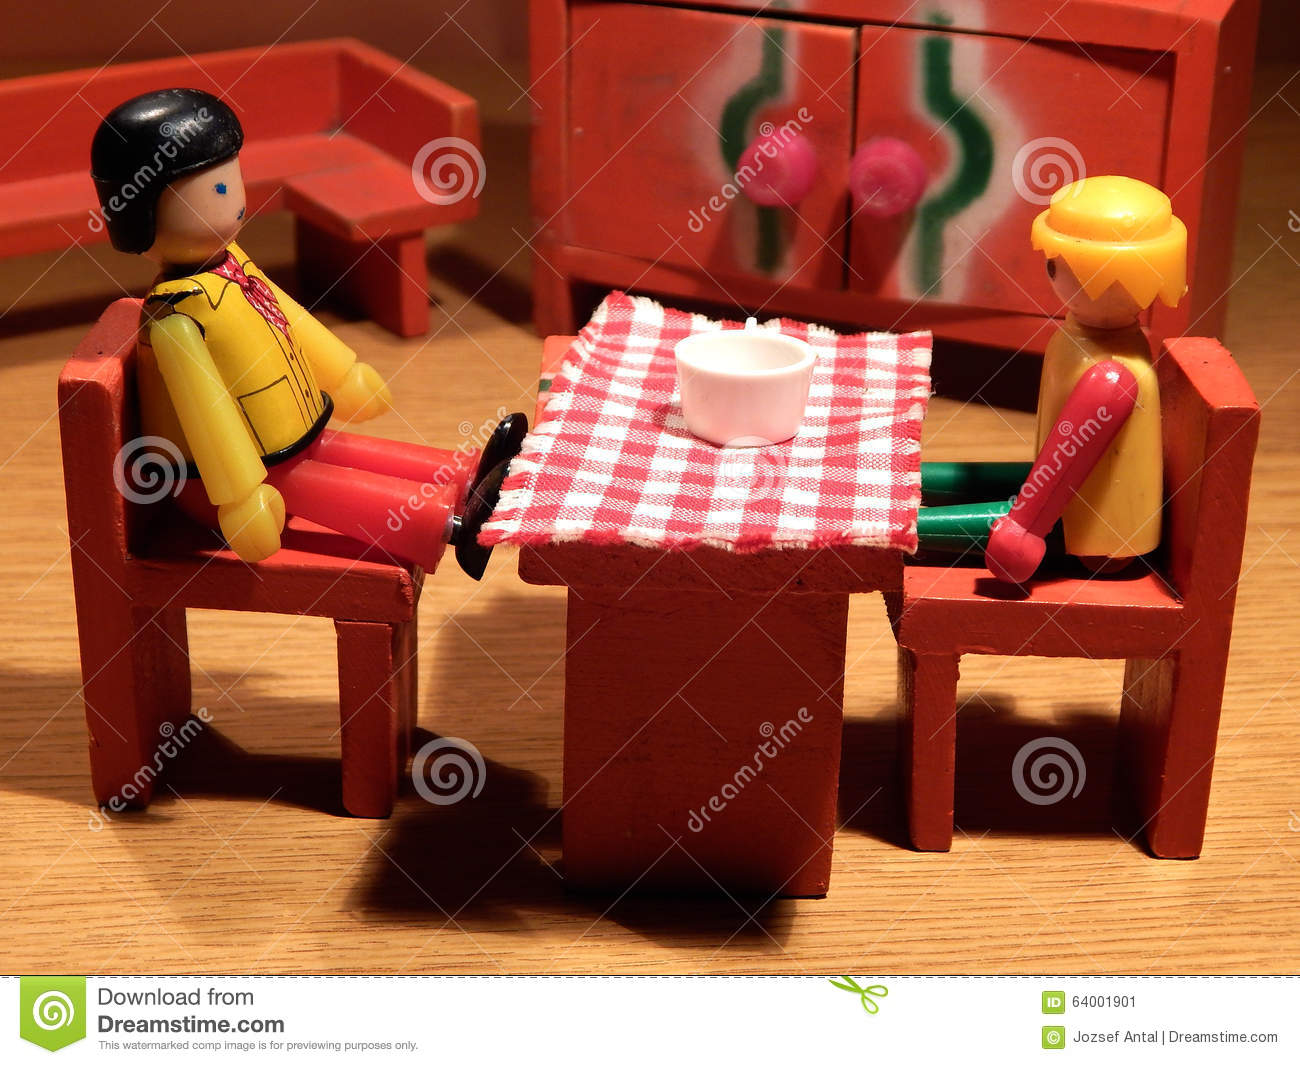 Have a chat stock photo image 64001901 for Toy kitchen table